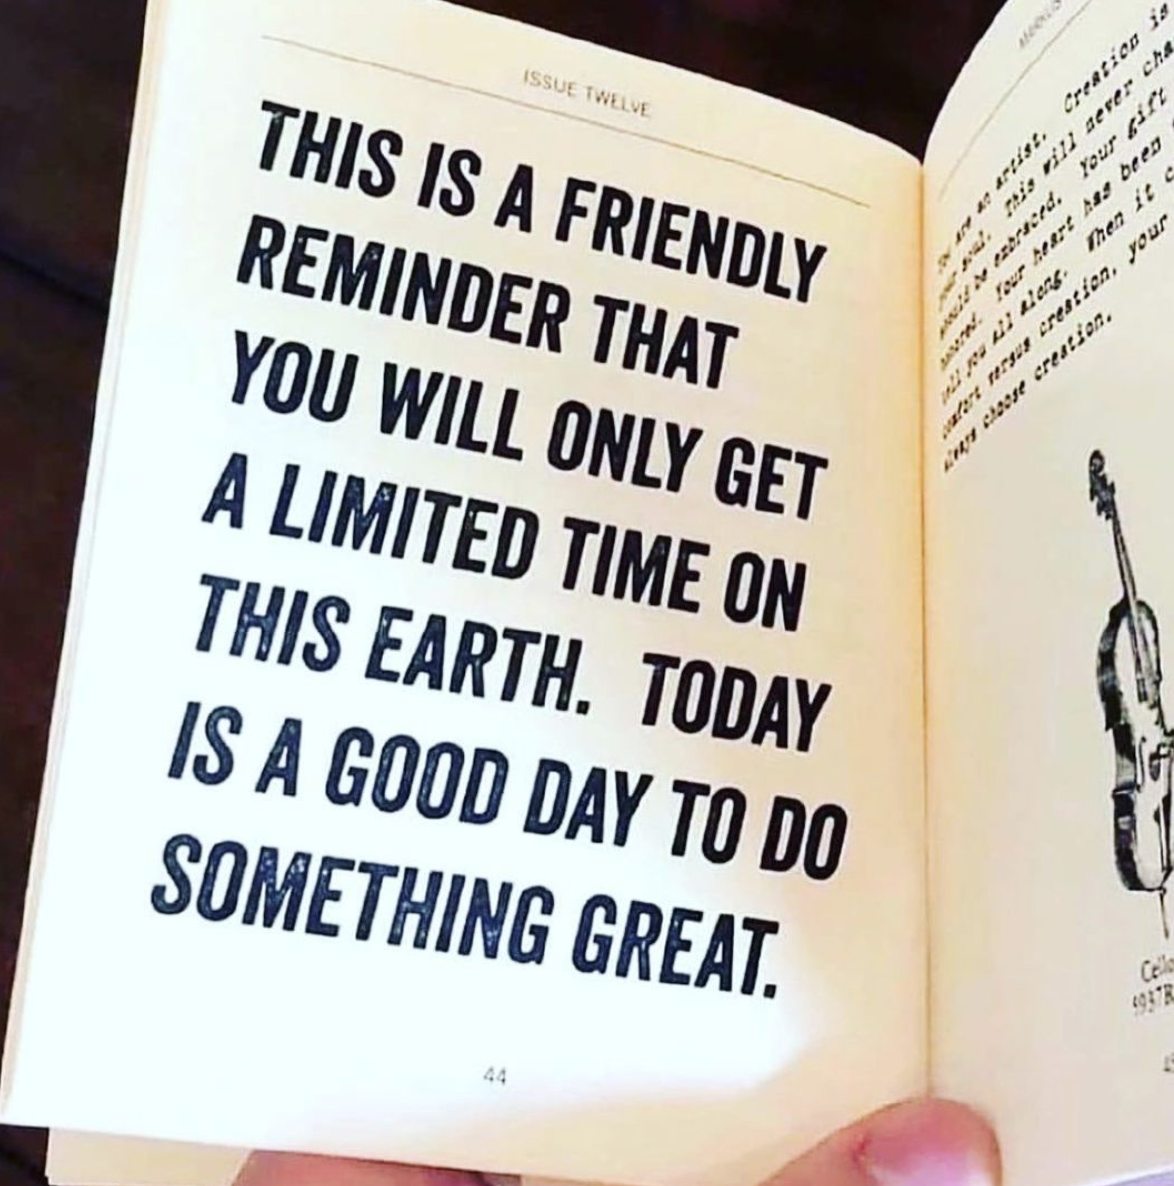 [Image] Your time on earth is limited. Use it wisely to do your best every day.